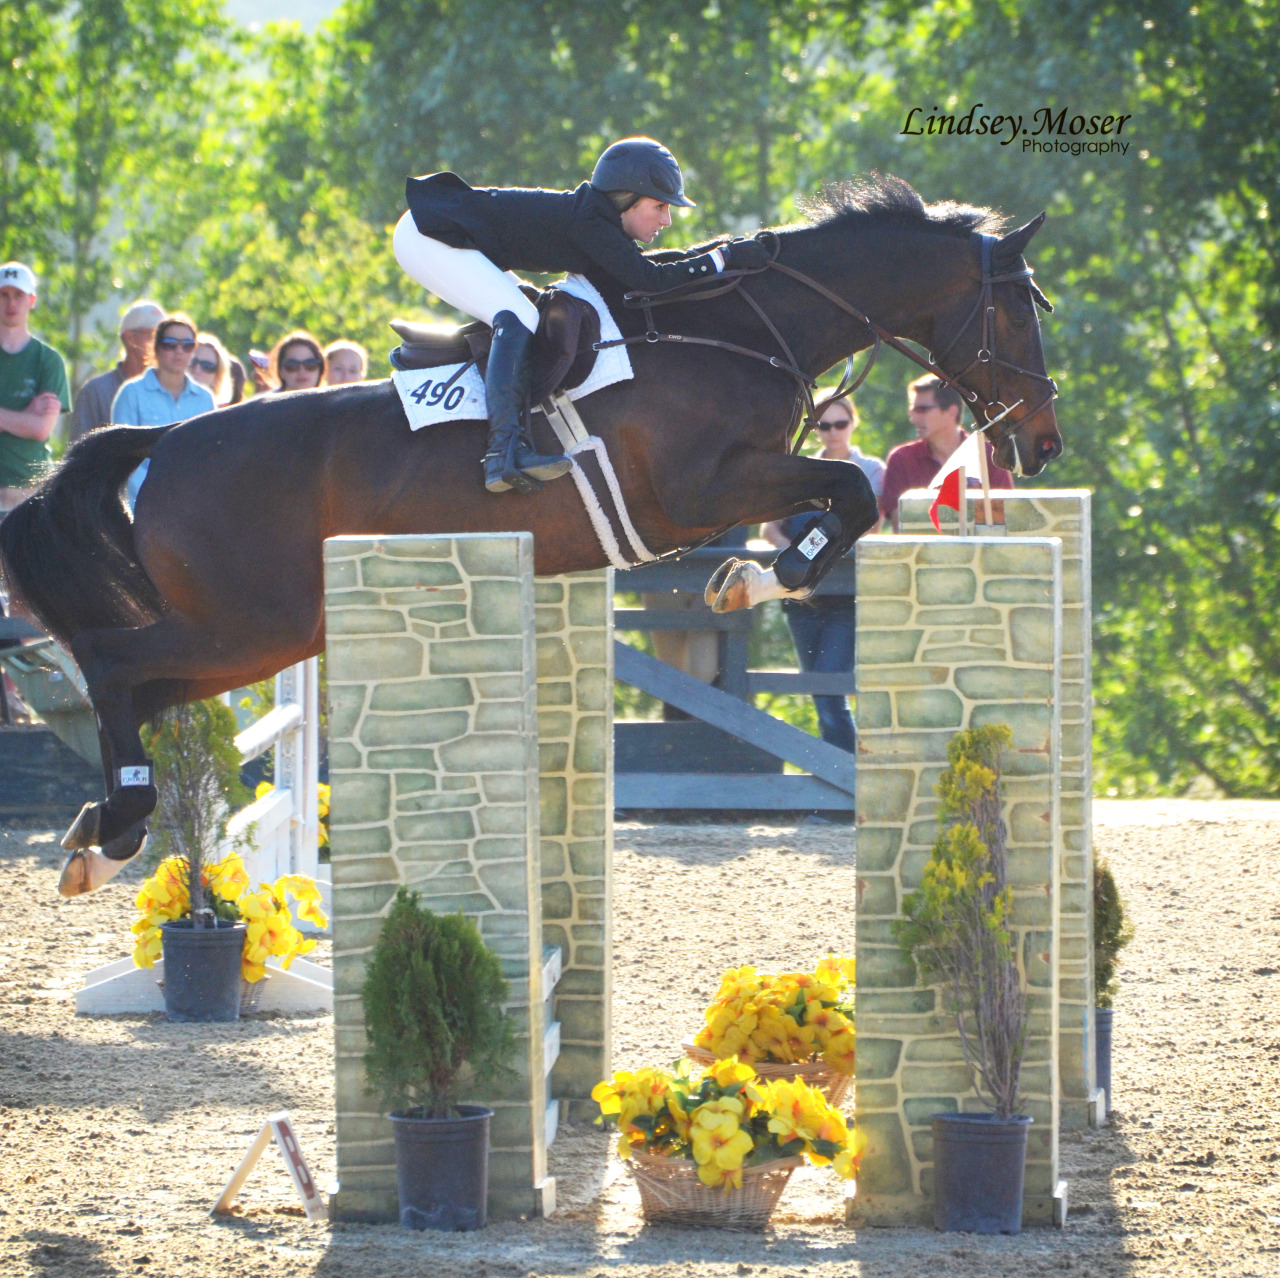 killianclark:  Do you guys realize how equestrians can contort their bodies?Just take the horse away and BAM